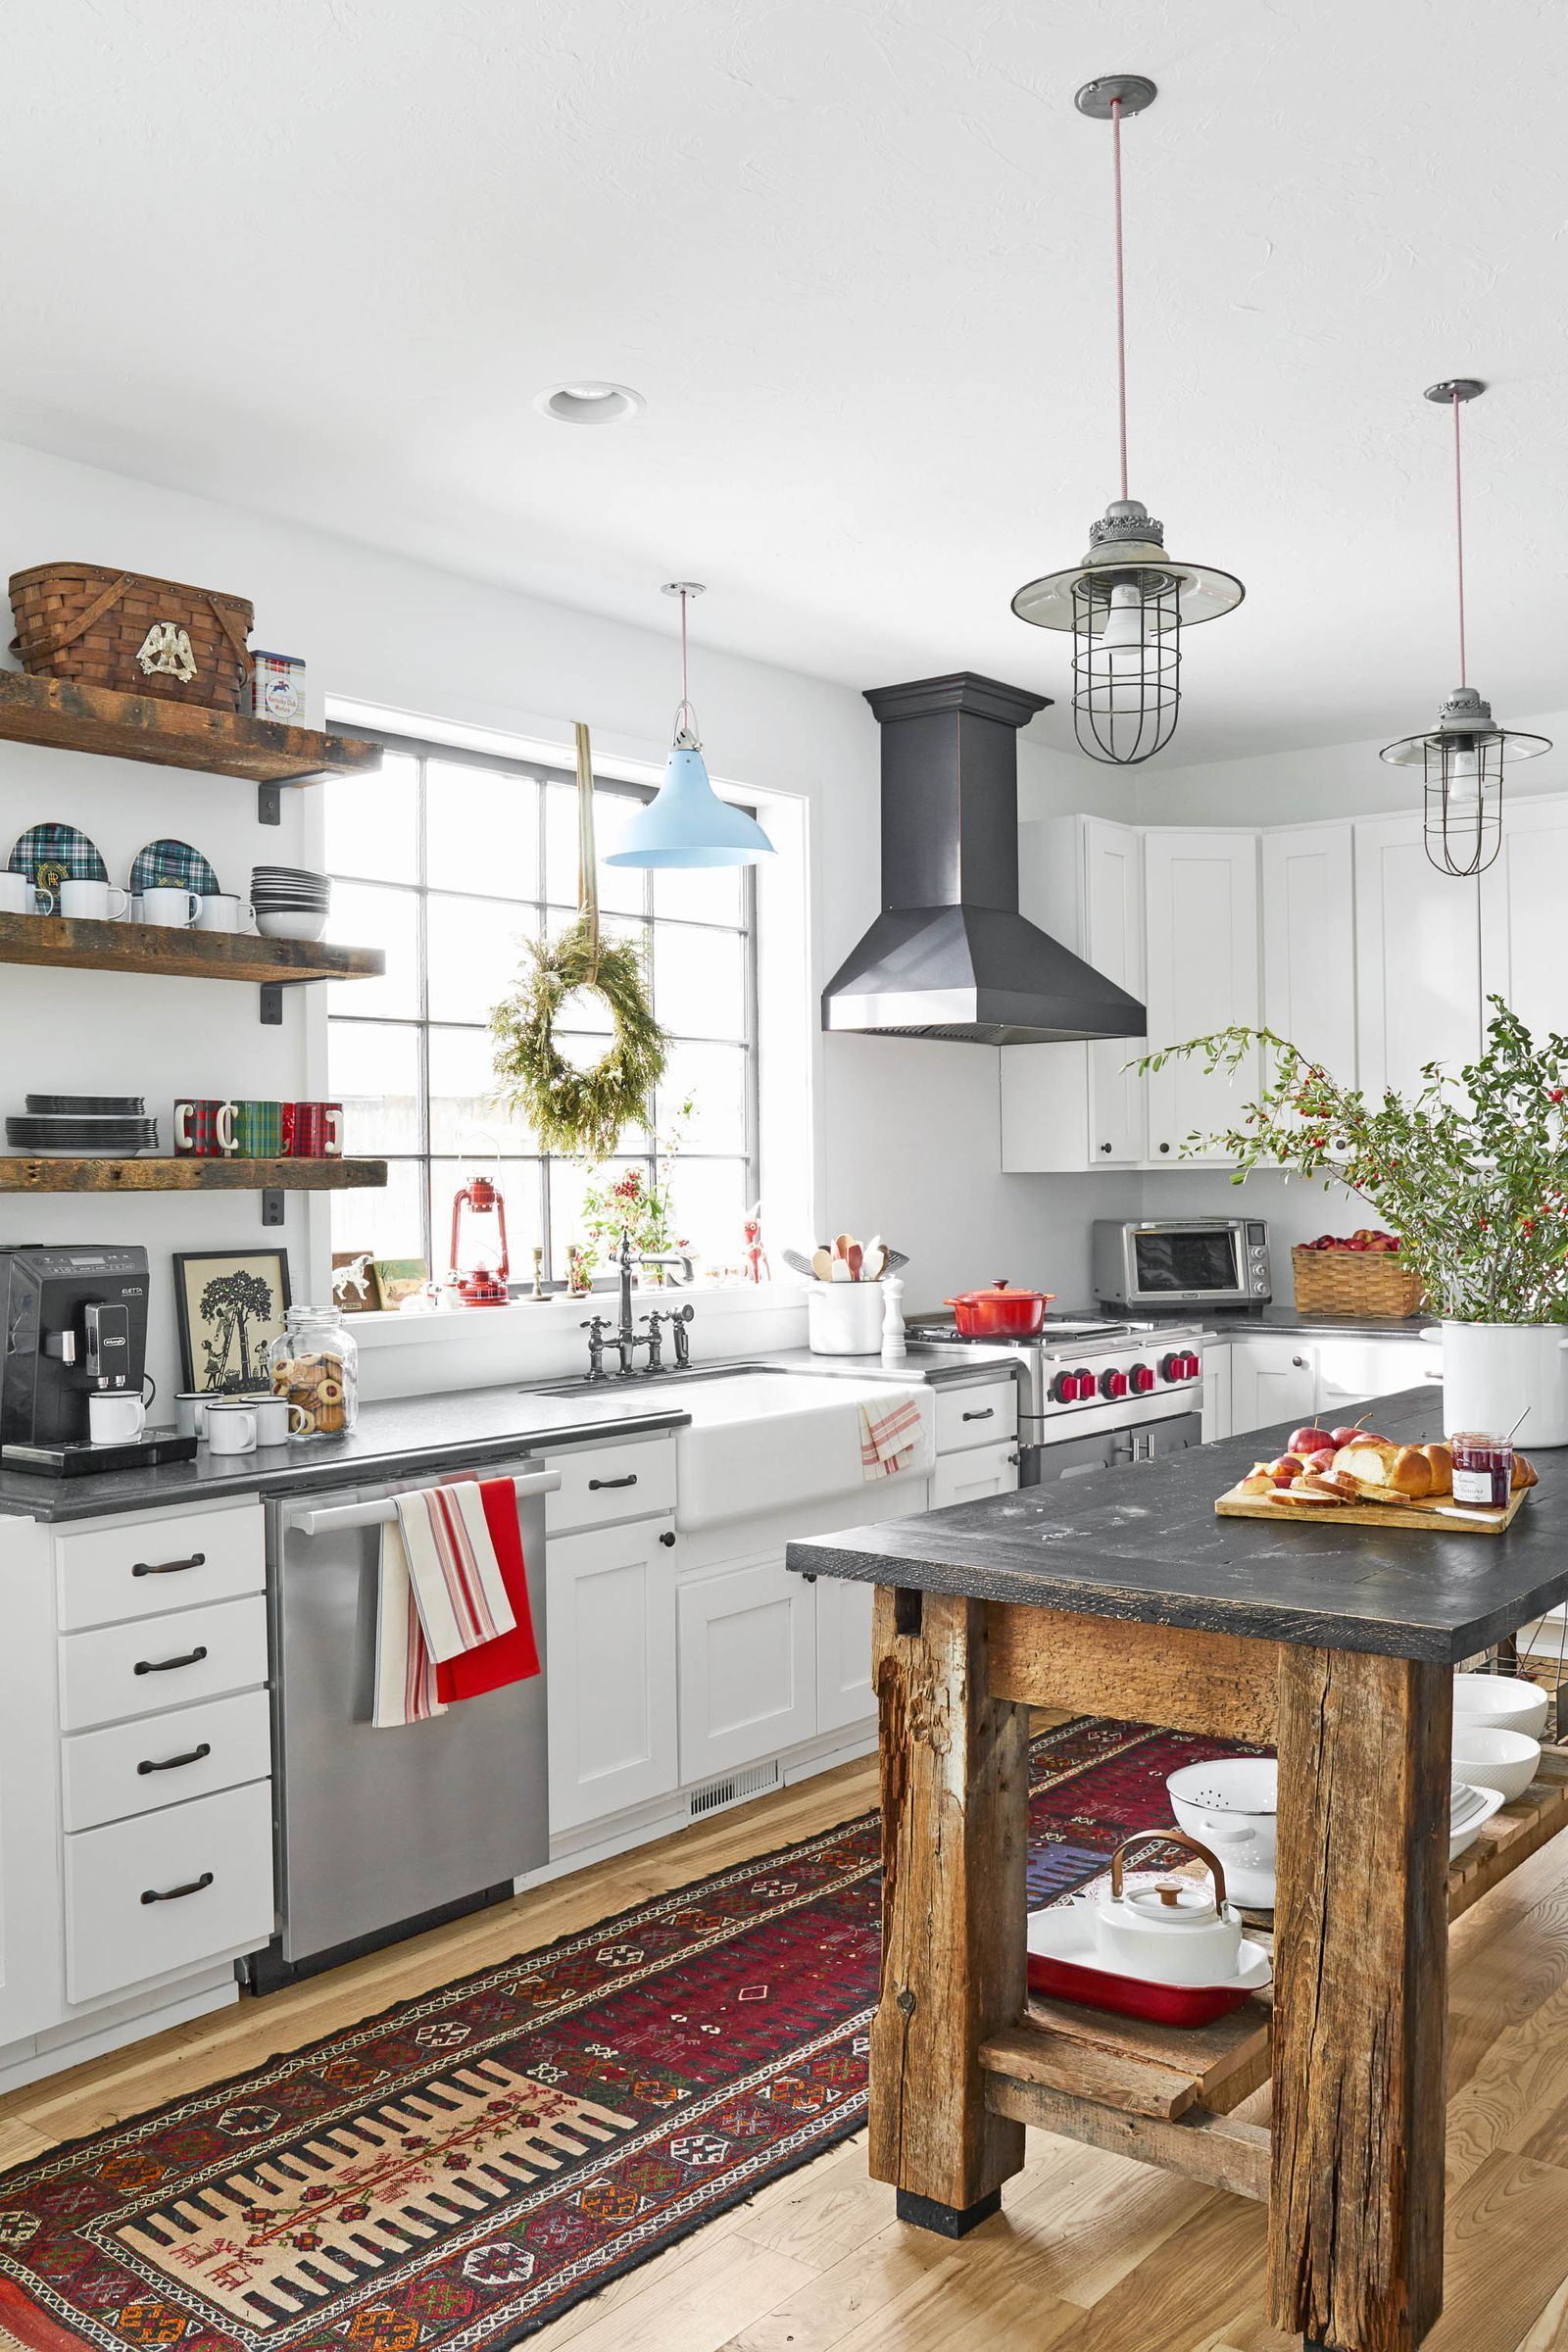 25 christmas kitchen decorating ideas to bring even more cheer into your home farmhouse on farmhouse kitchen xmas id=93643